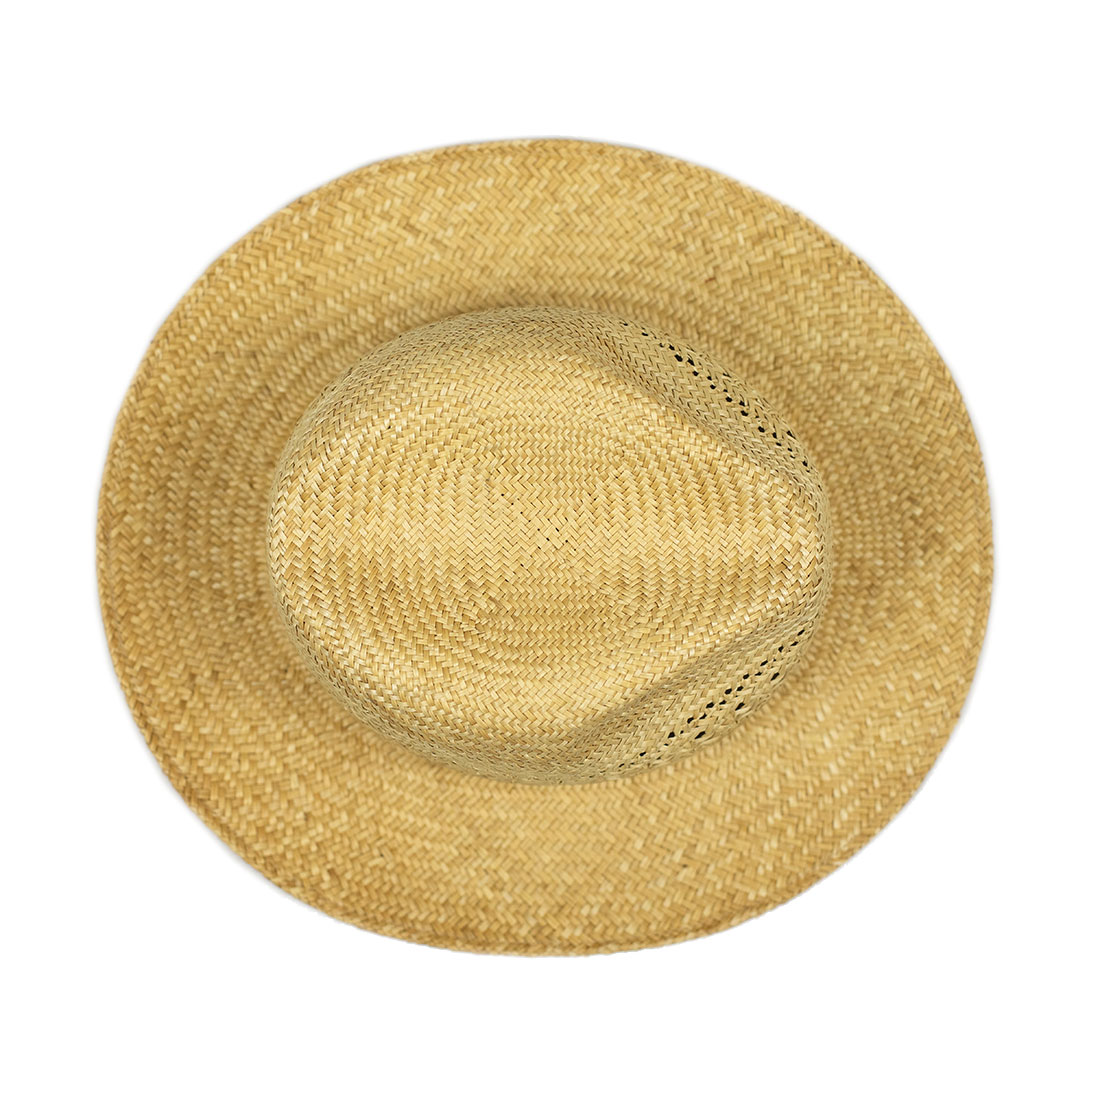 Sublime Hats Made in Japan Spring Summer 2021 SS21 Sobo Hat Straw Hat  (4).jpg